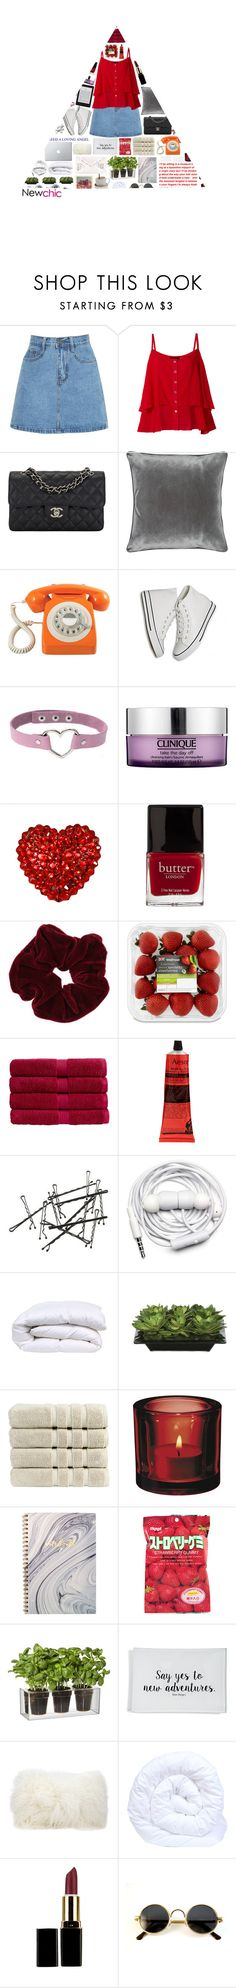 """""""NewChic Style ♡ 16"""" by lanadelnotyou ❤ liked on Polyvore featuring Chanel, M&Co, GPO, Clinique, Tarina Tarantino, Butter London, Miss Selfridge, Christy, Aesop and Urbanears"""